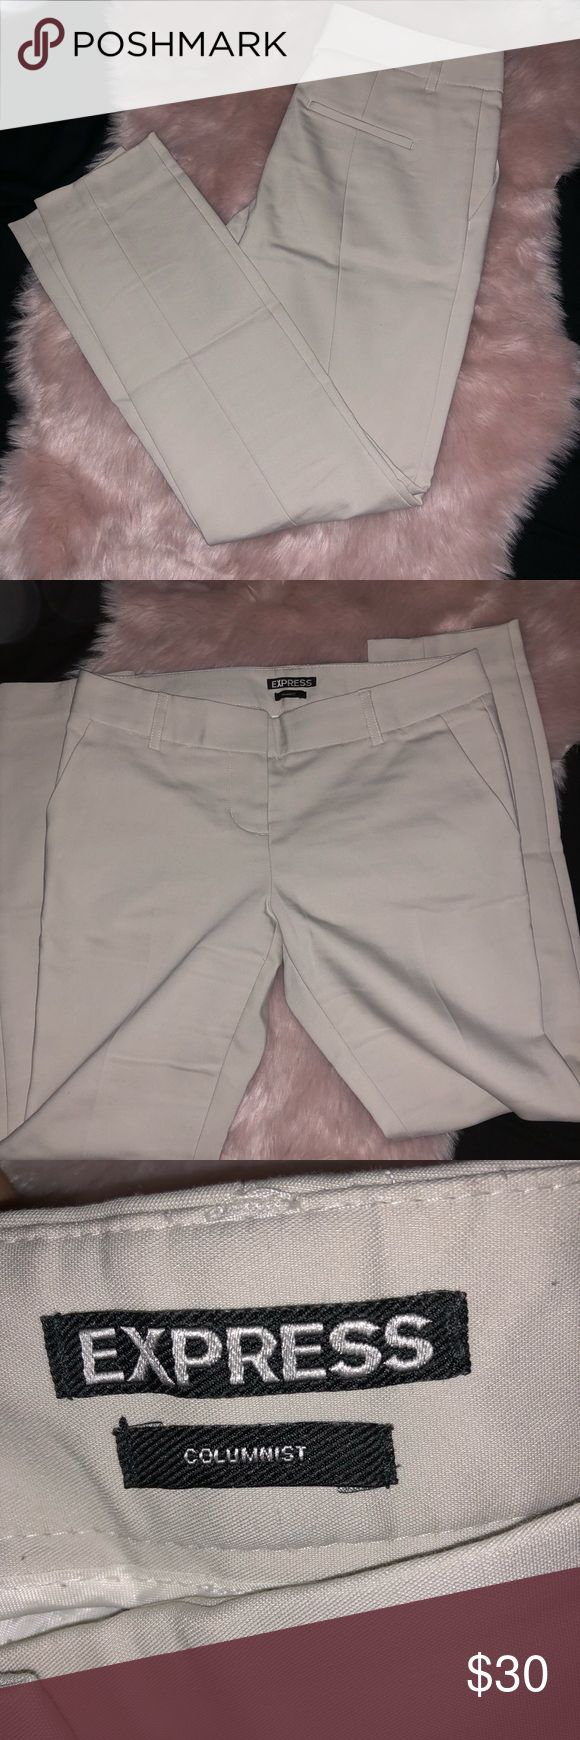 Express Columnist Pants Beige dress pants. Worn couple times. In great condition! Size 0R Express Pants